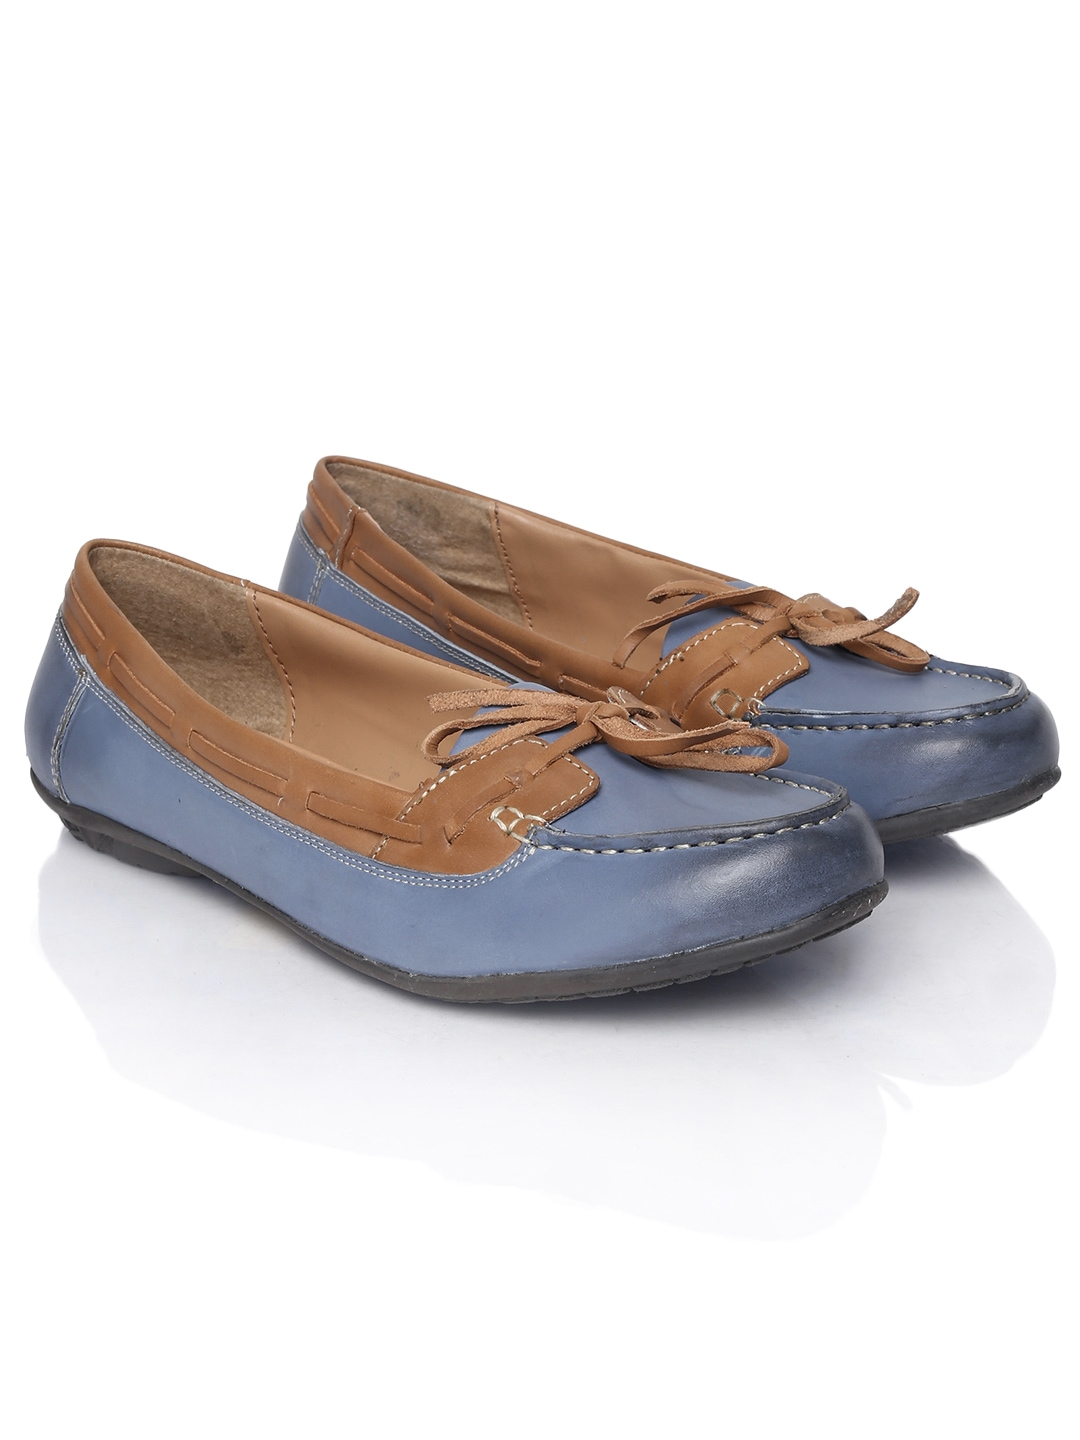 Hush Puppies Leather Boat Shoes